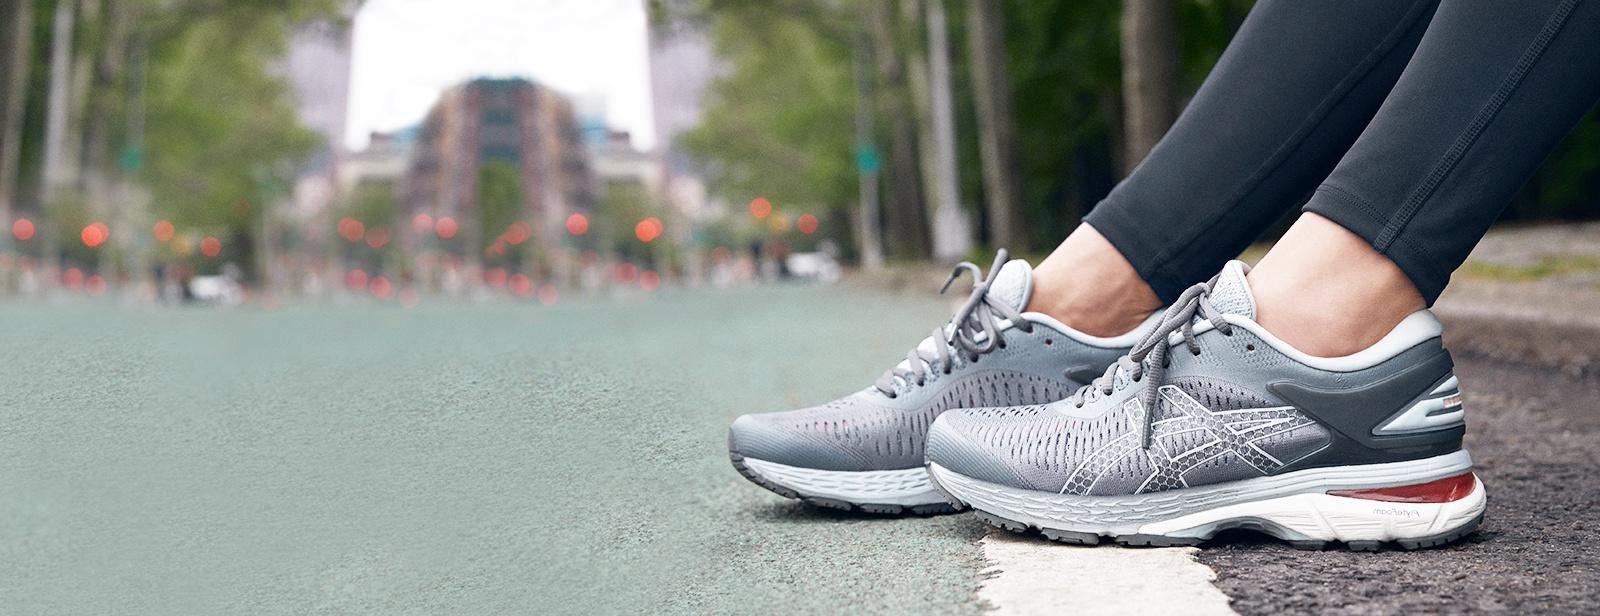 Closeup of gray running shoes on a woman sitting outside on a curb.